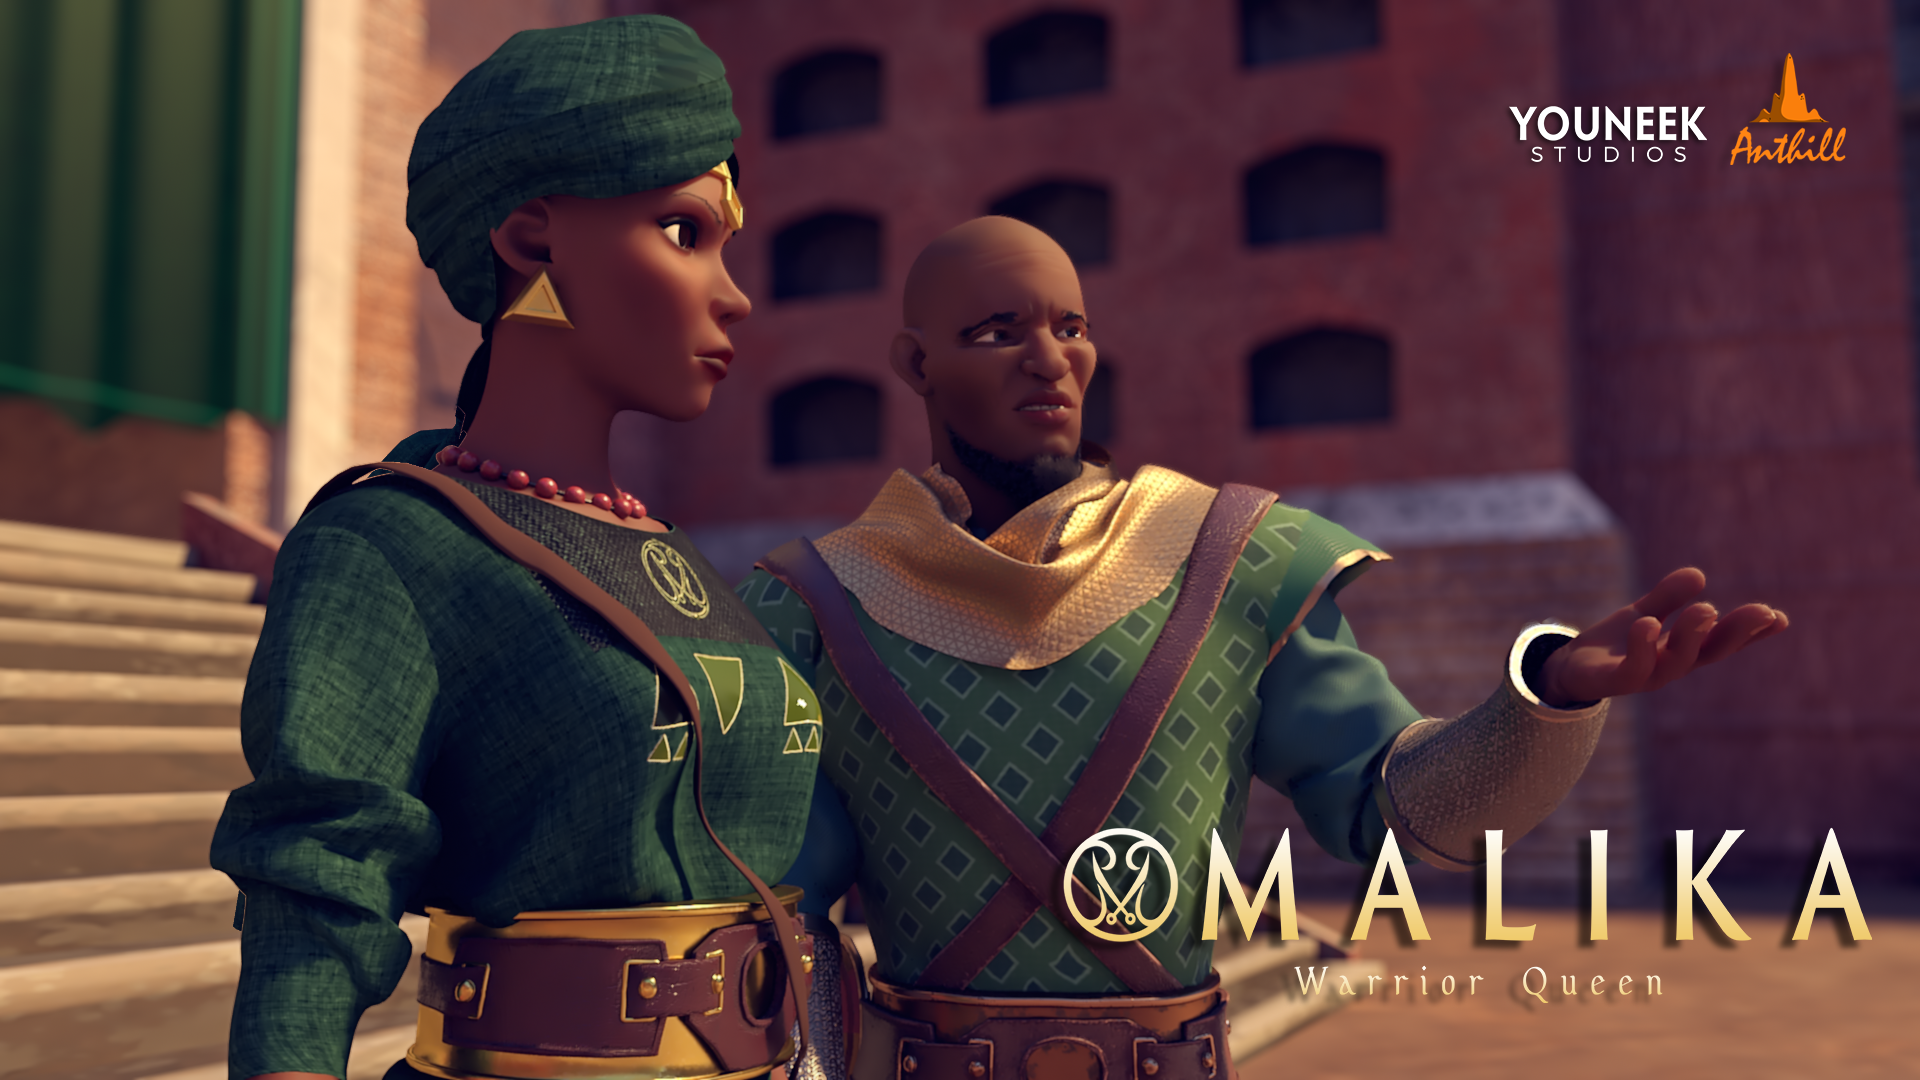 2 - From Comic Strip to Animation: Read Full Malika Story + Budget Details Exclusives